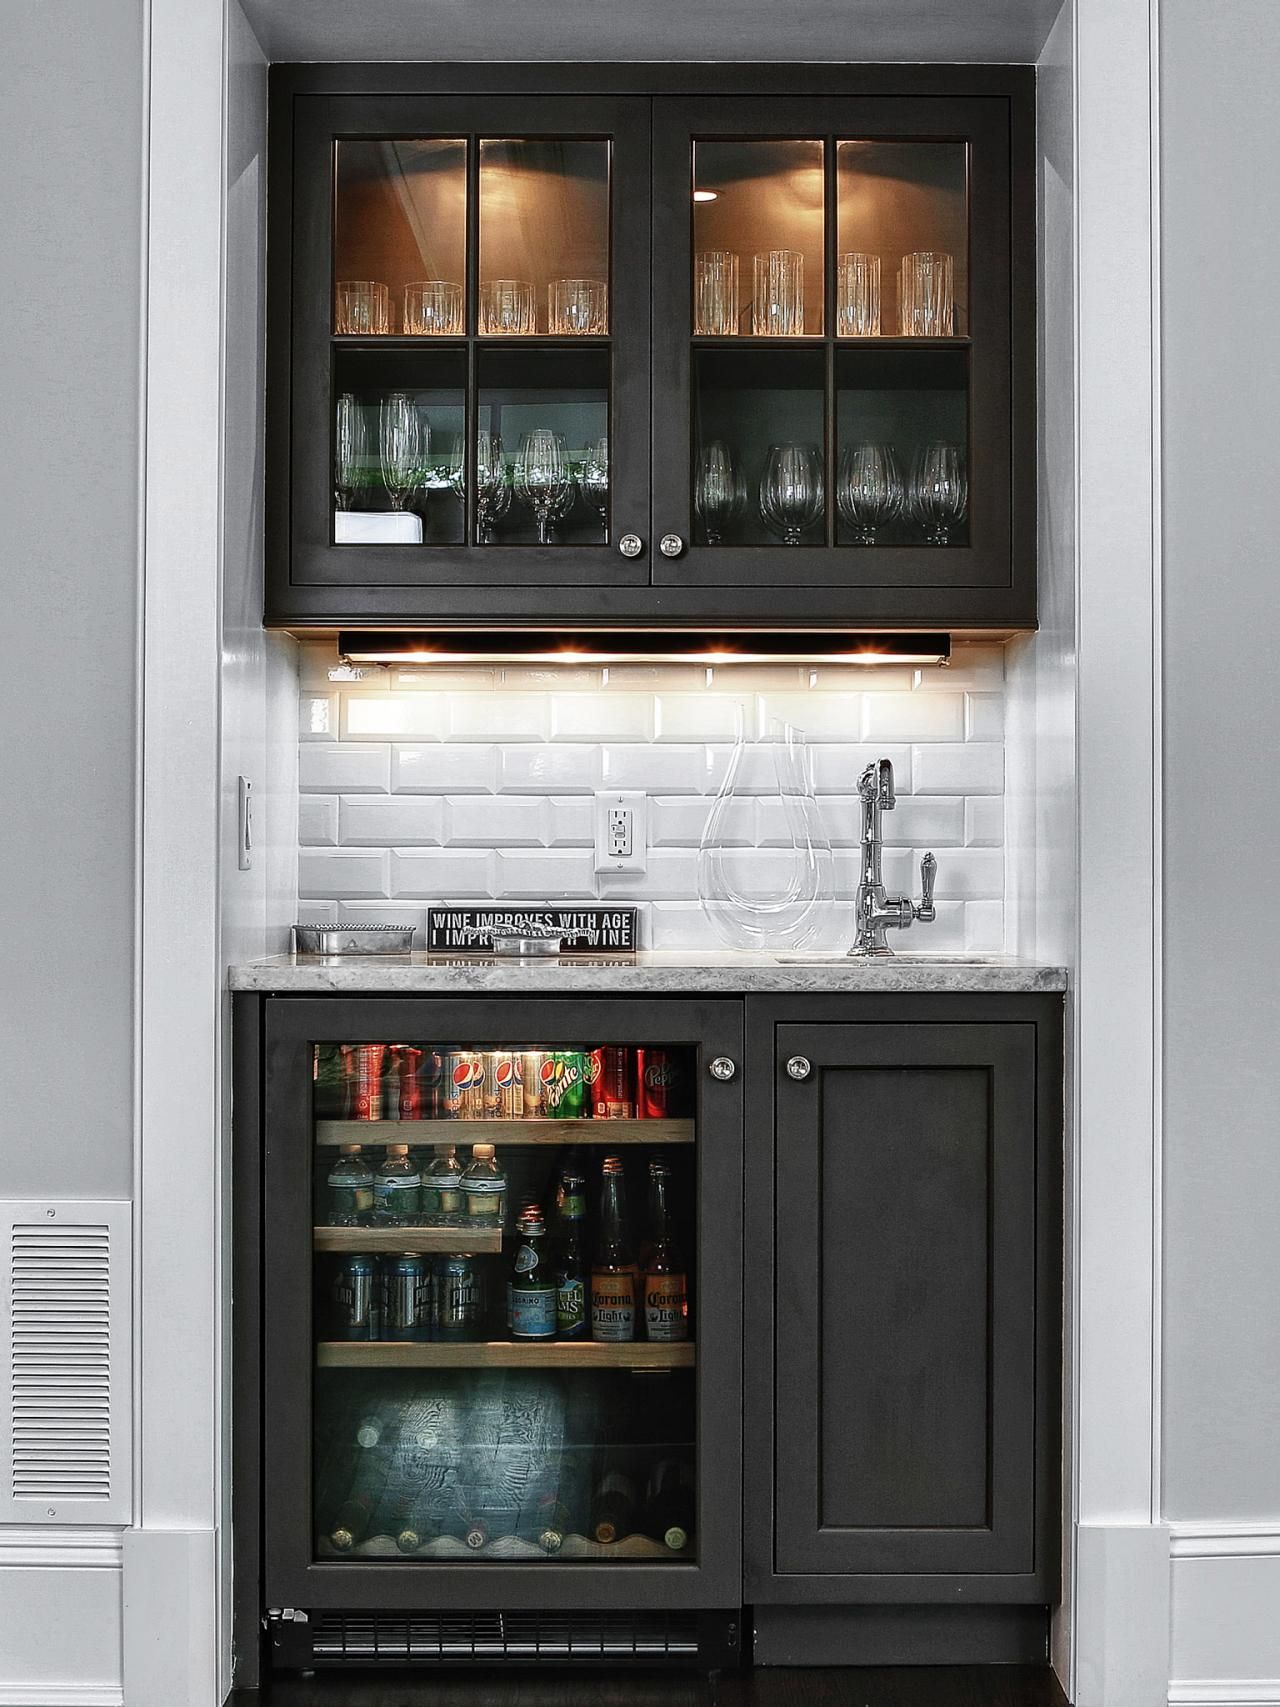 15 Stylish Small Home Bar Ideas Diy Small Bars For Home Bars